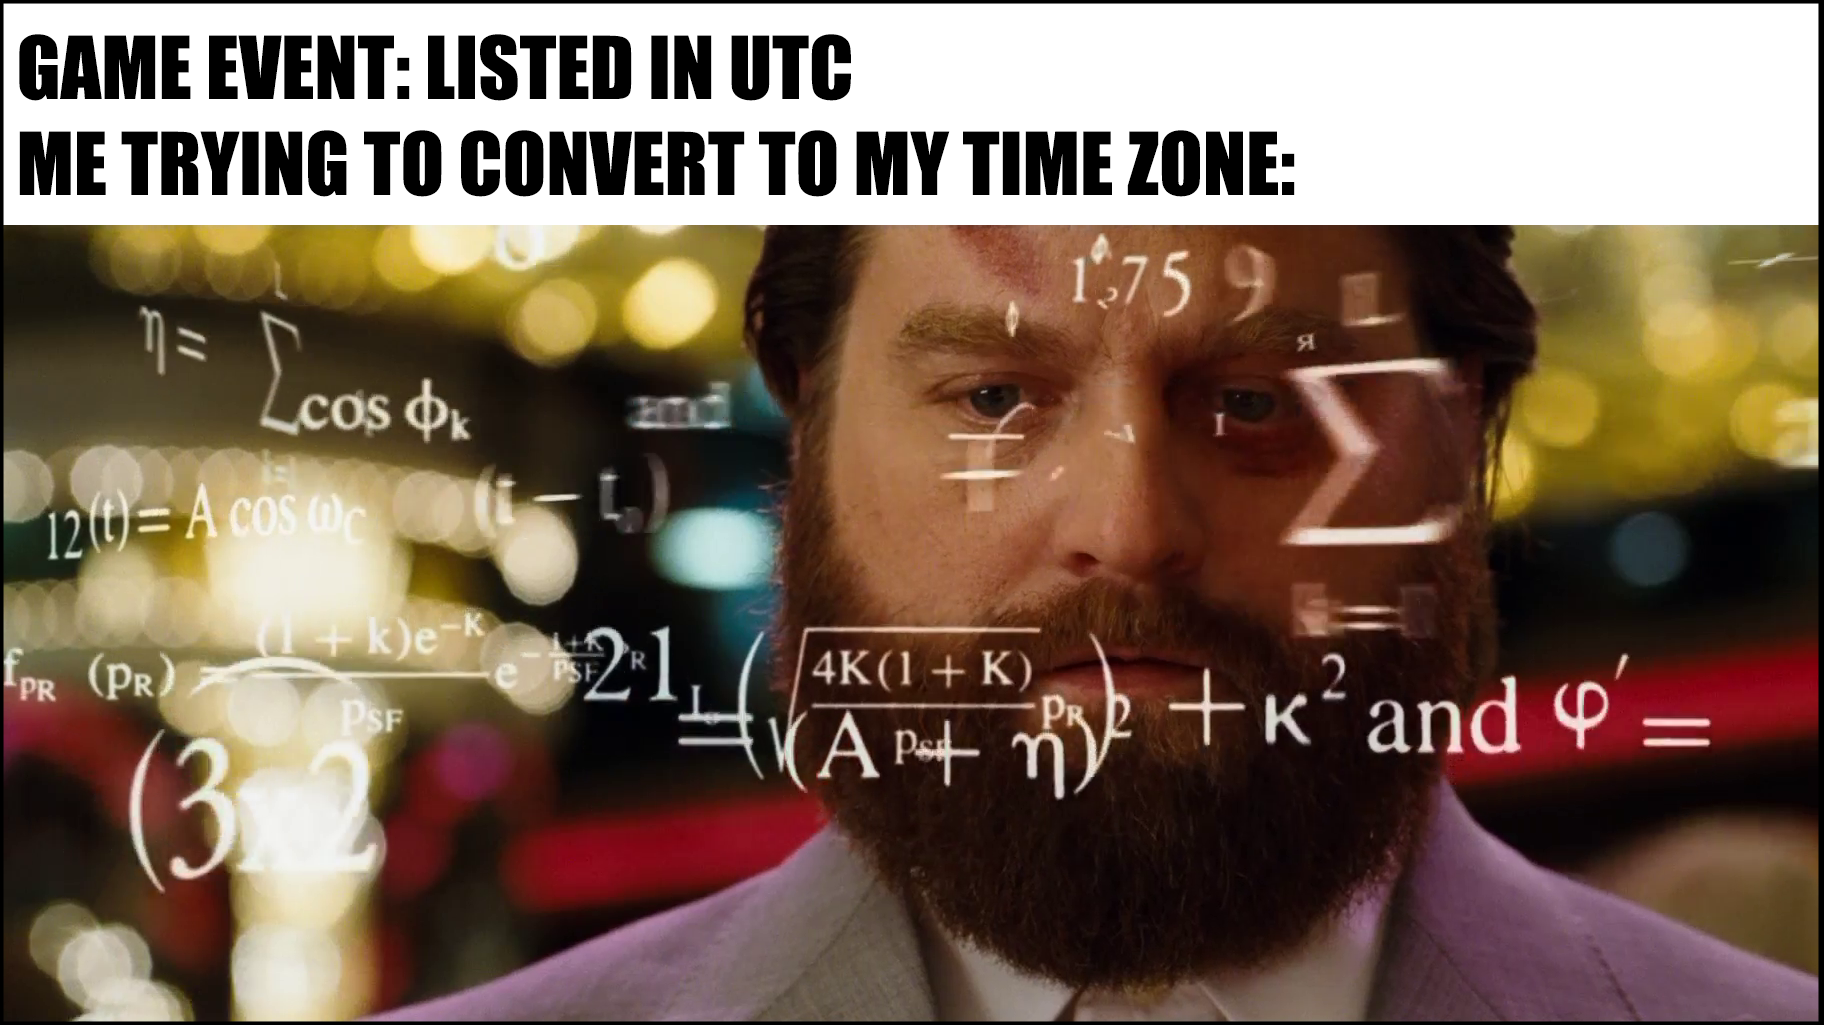 Introducing the BlueStacks UTC Converter: Convert in-Game Events from UTC to your Time Zone